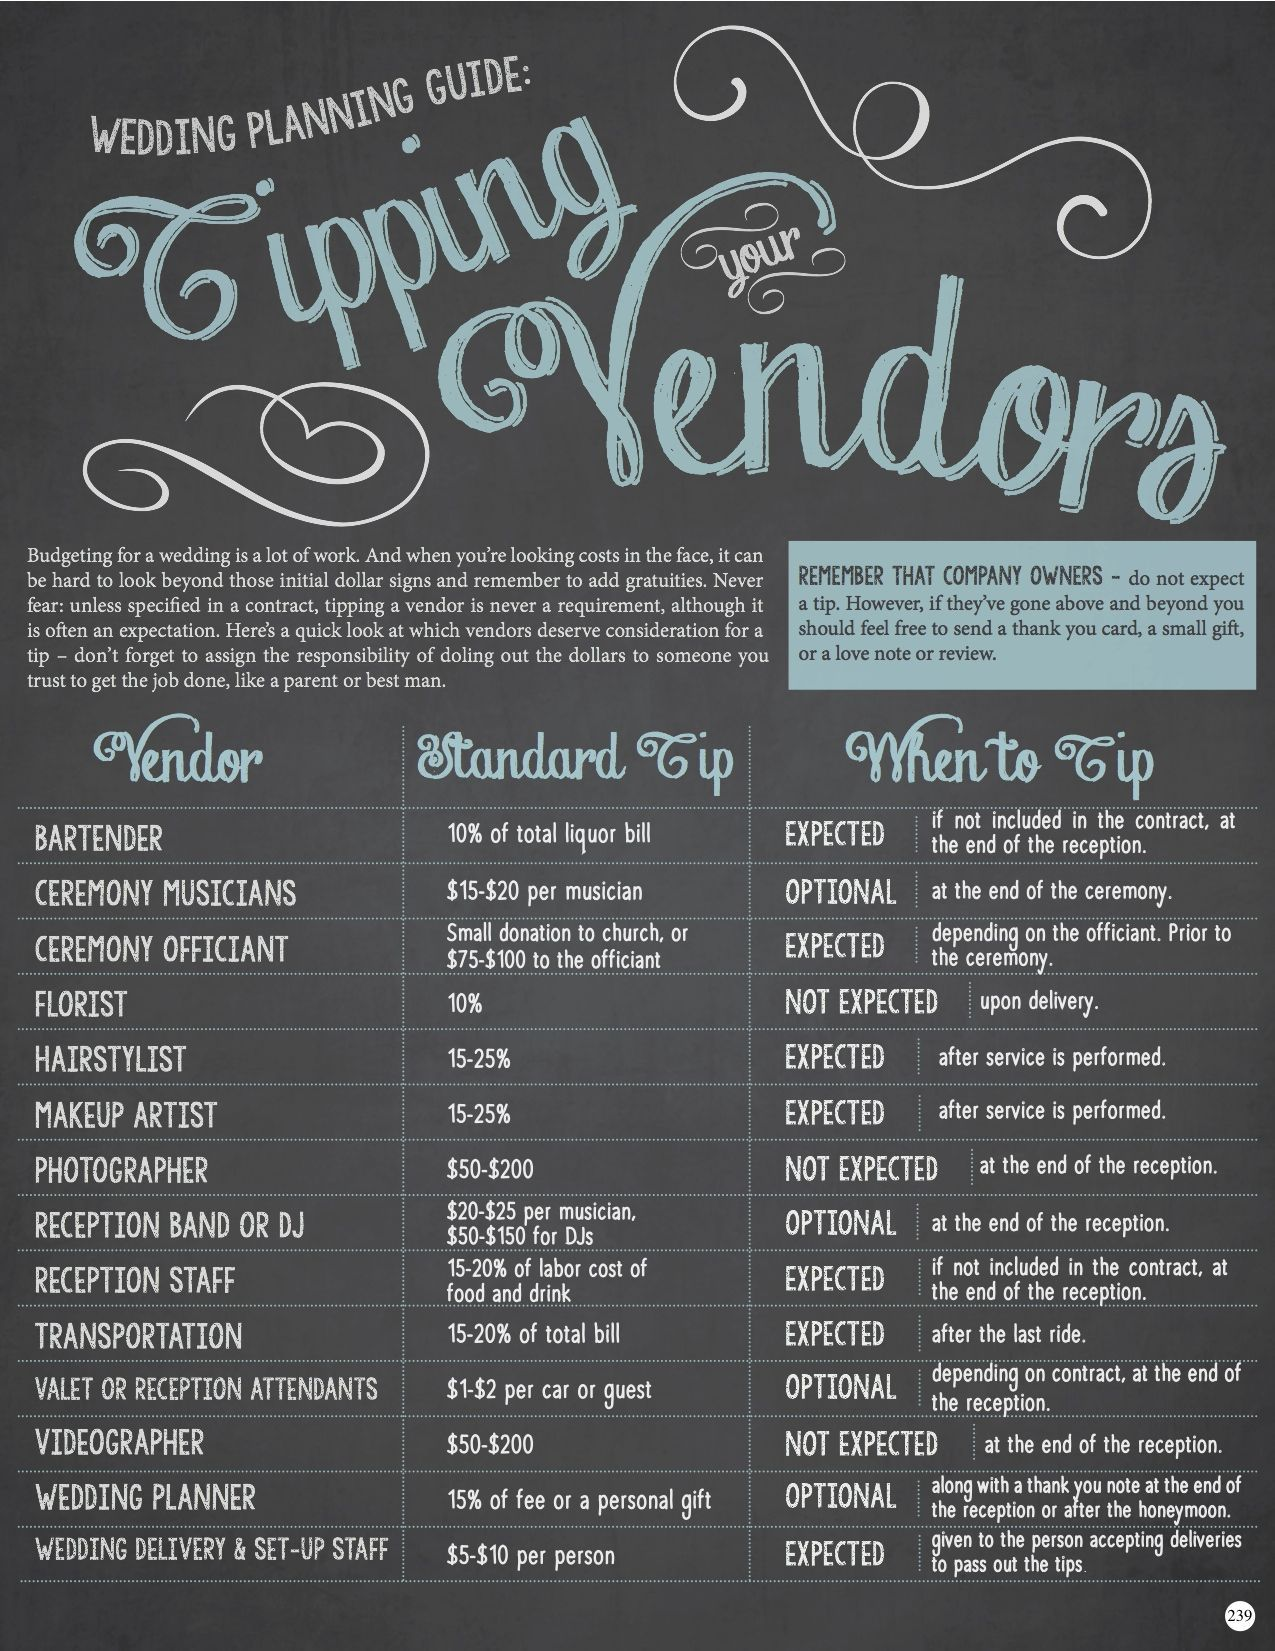 There Are So Many Diffe Sources Offering Advice On Tipping Your Wedding Vendors It Can